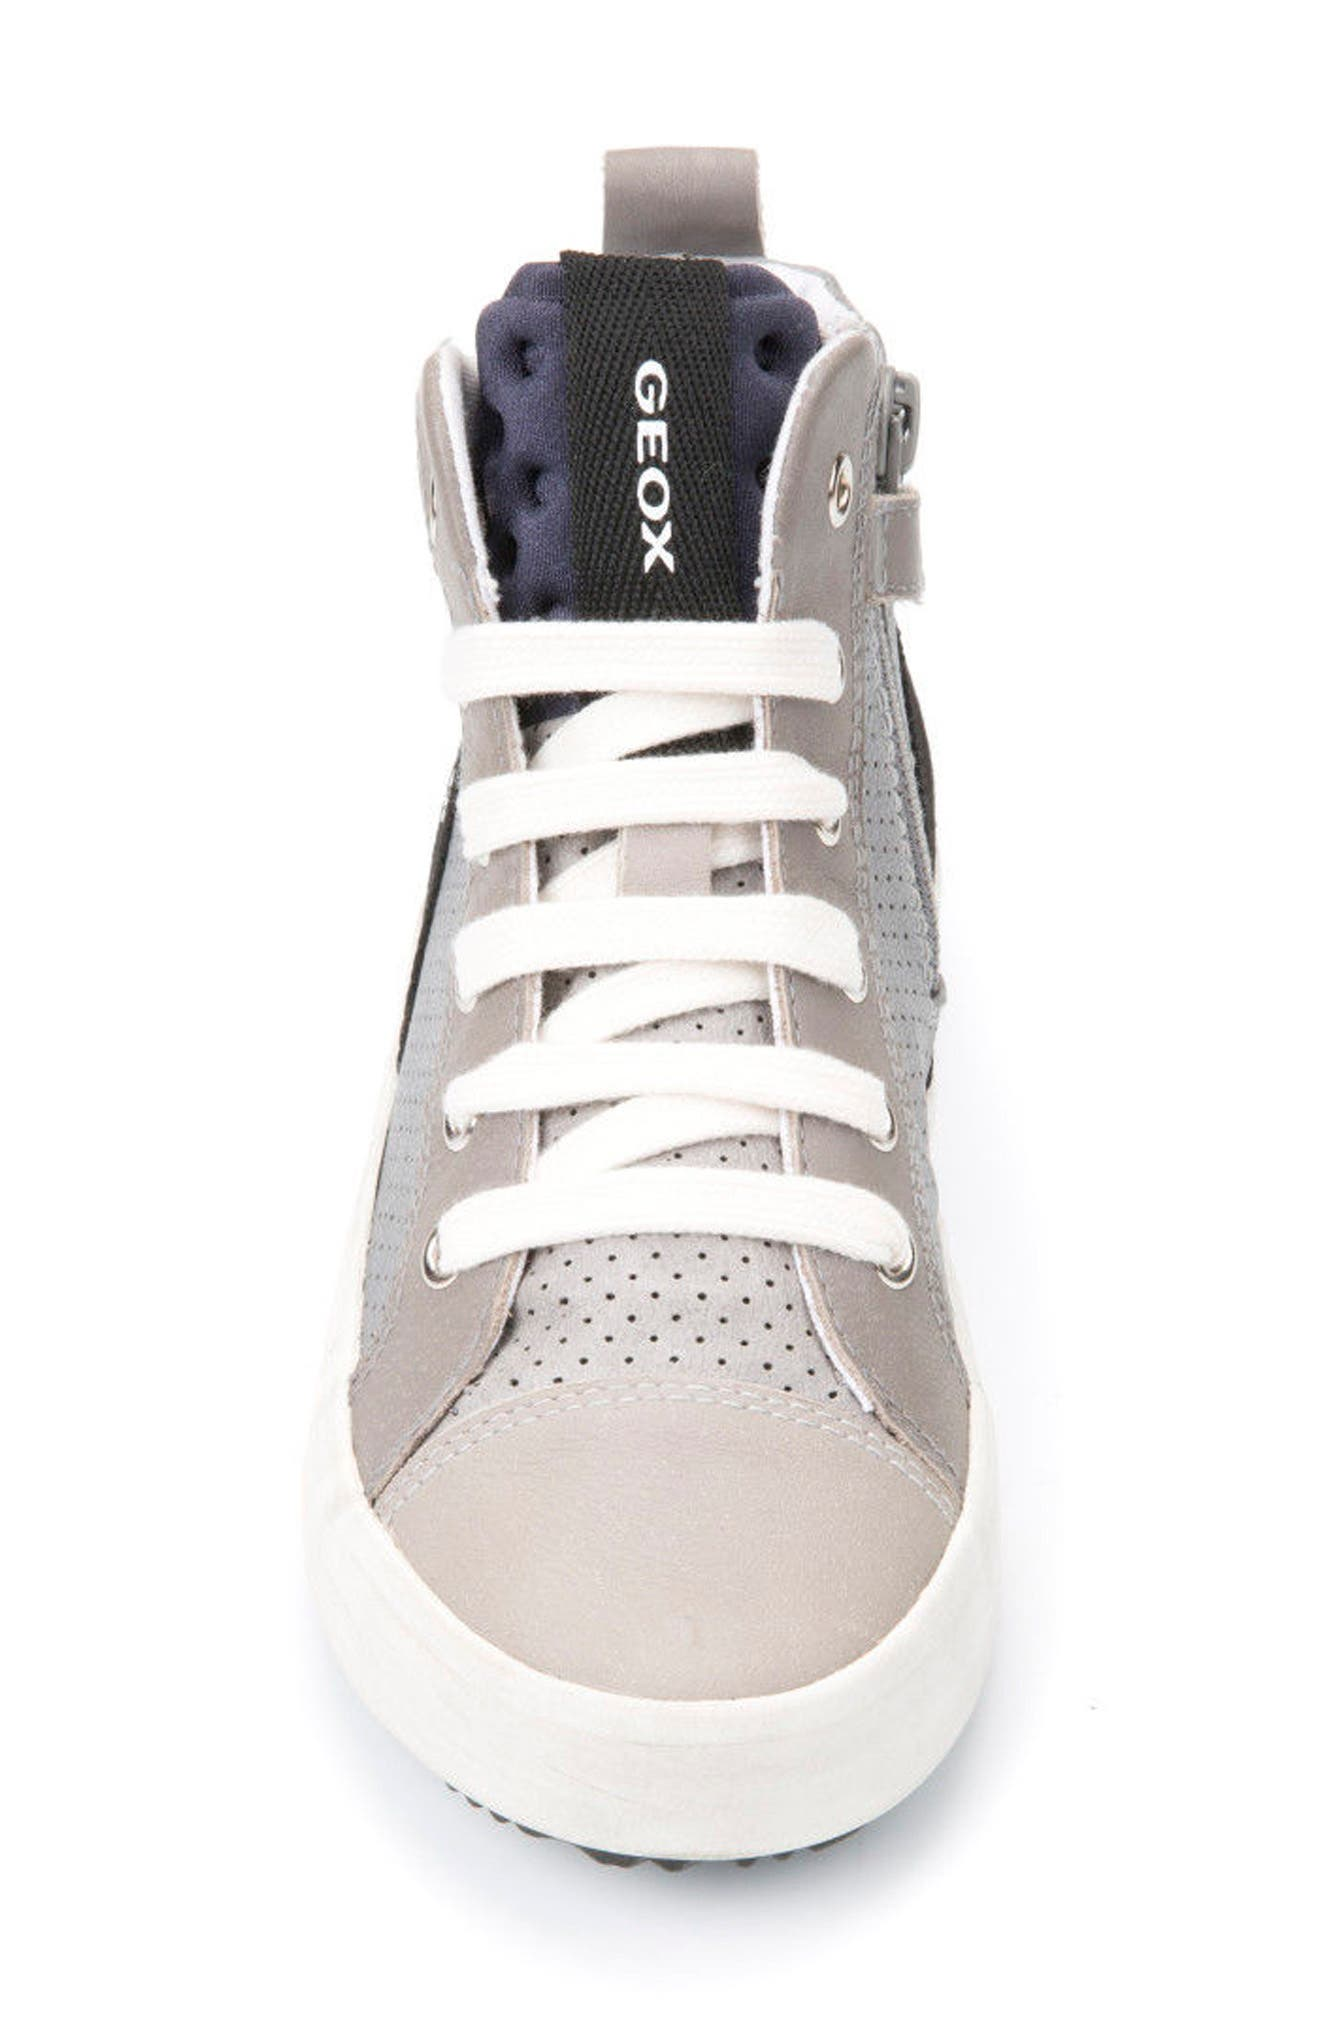 Alonisso Perforated Mid Top Sneaker,                             Alternate thumbnail 4, color,                             GREY/ LIGHT GREY